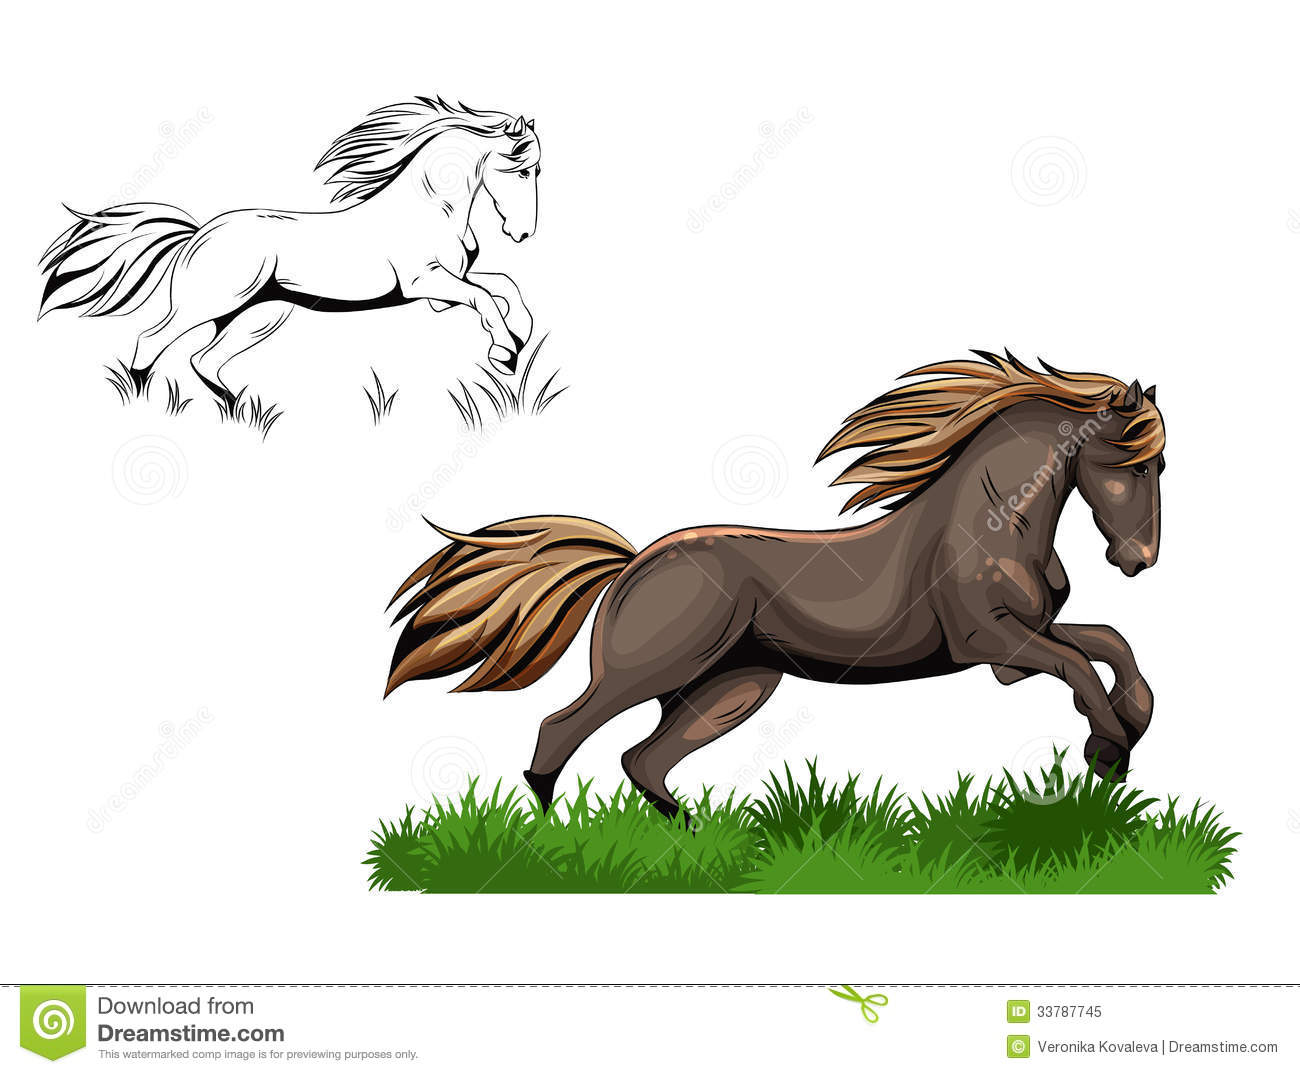 Running arabian horse drawing - photo#28